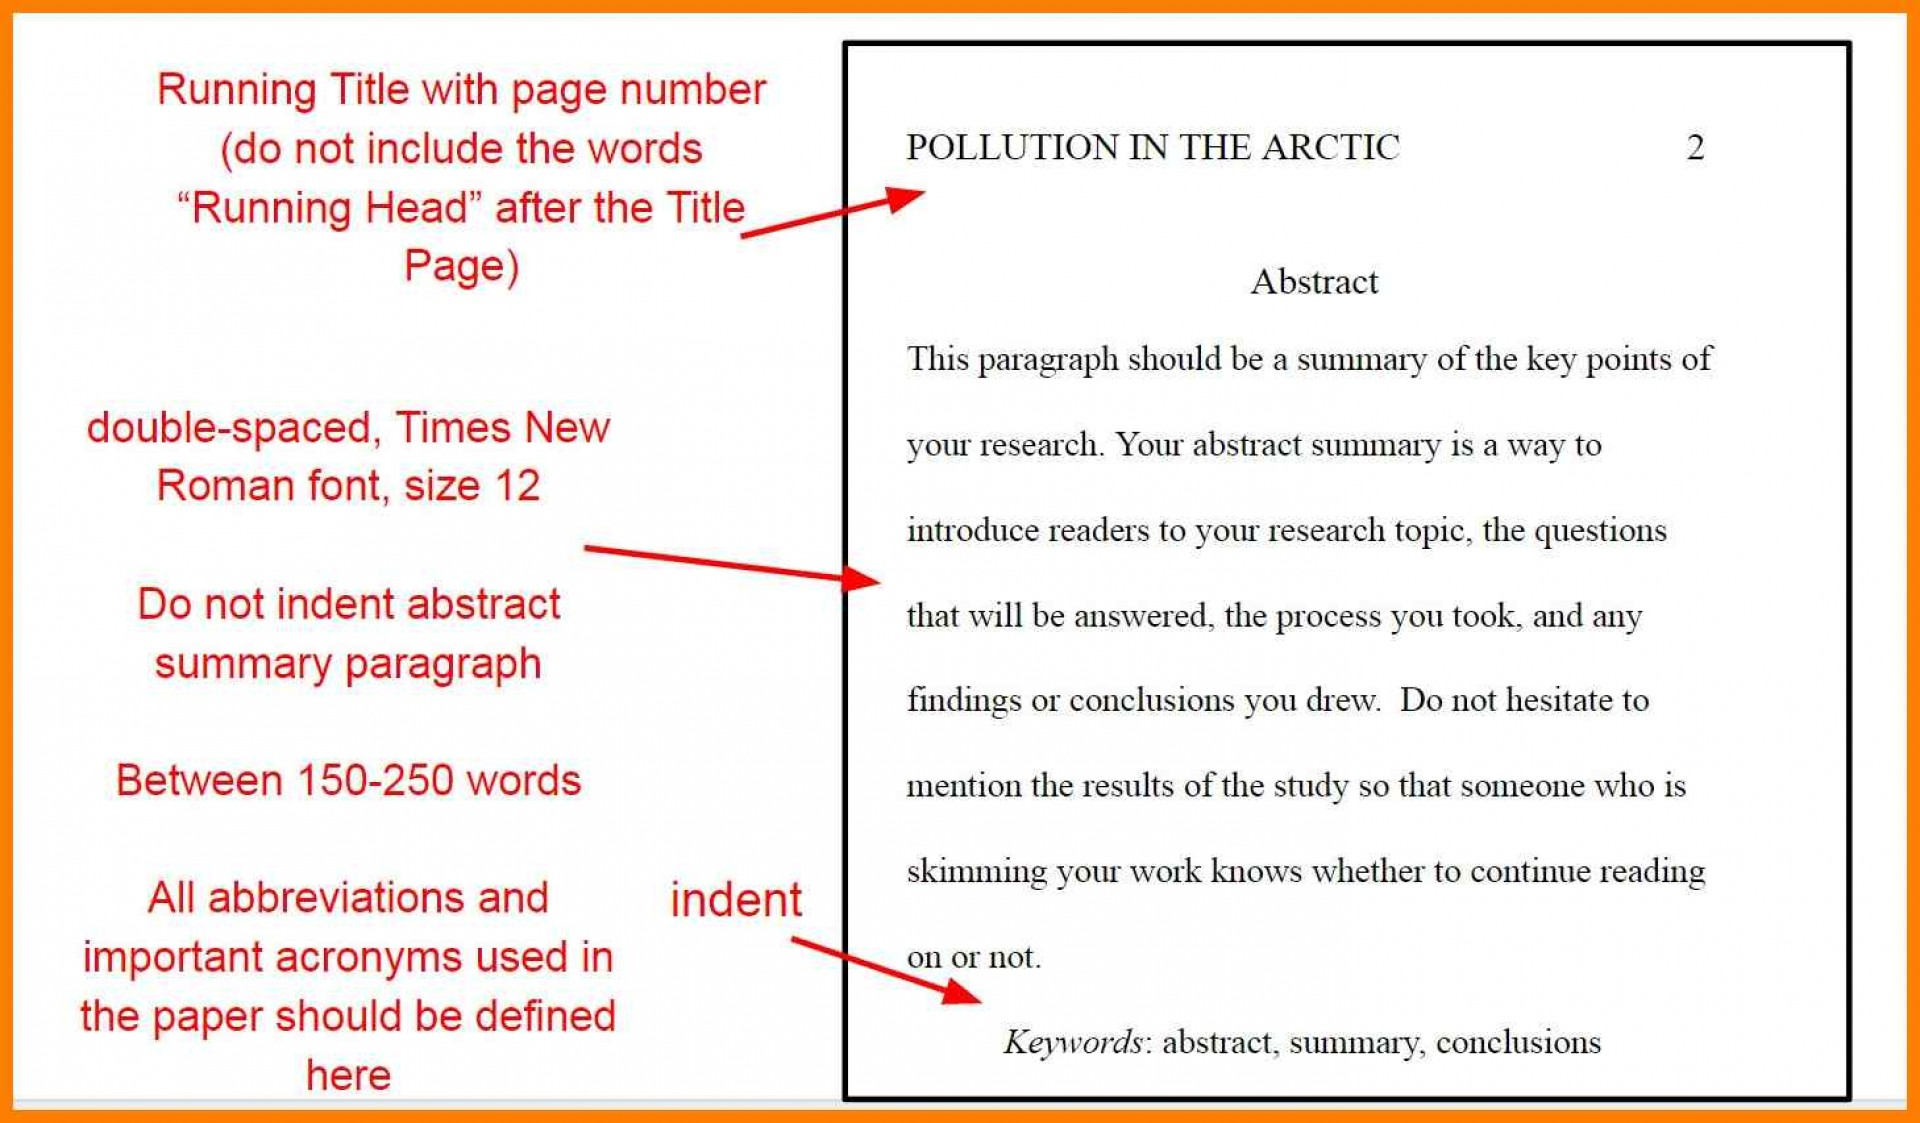 018 Apa Essay Format Apaabstractyo Font Size Stunning College 1920